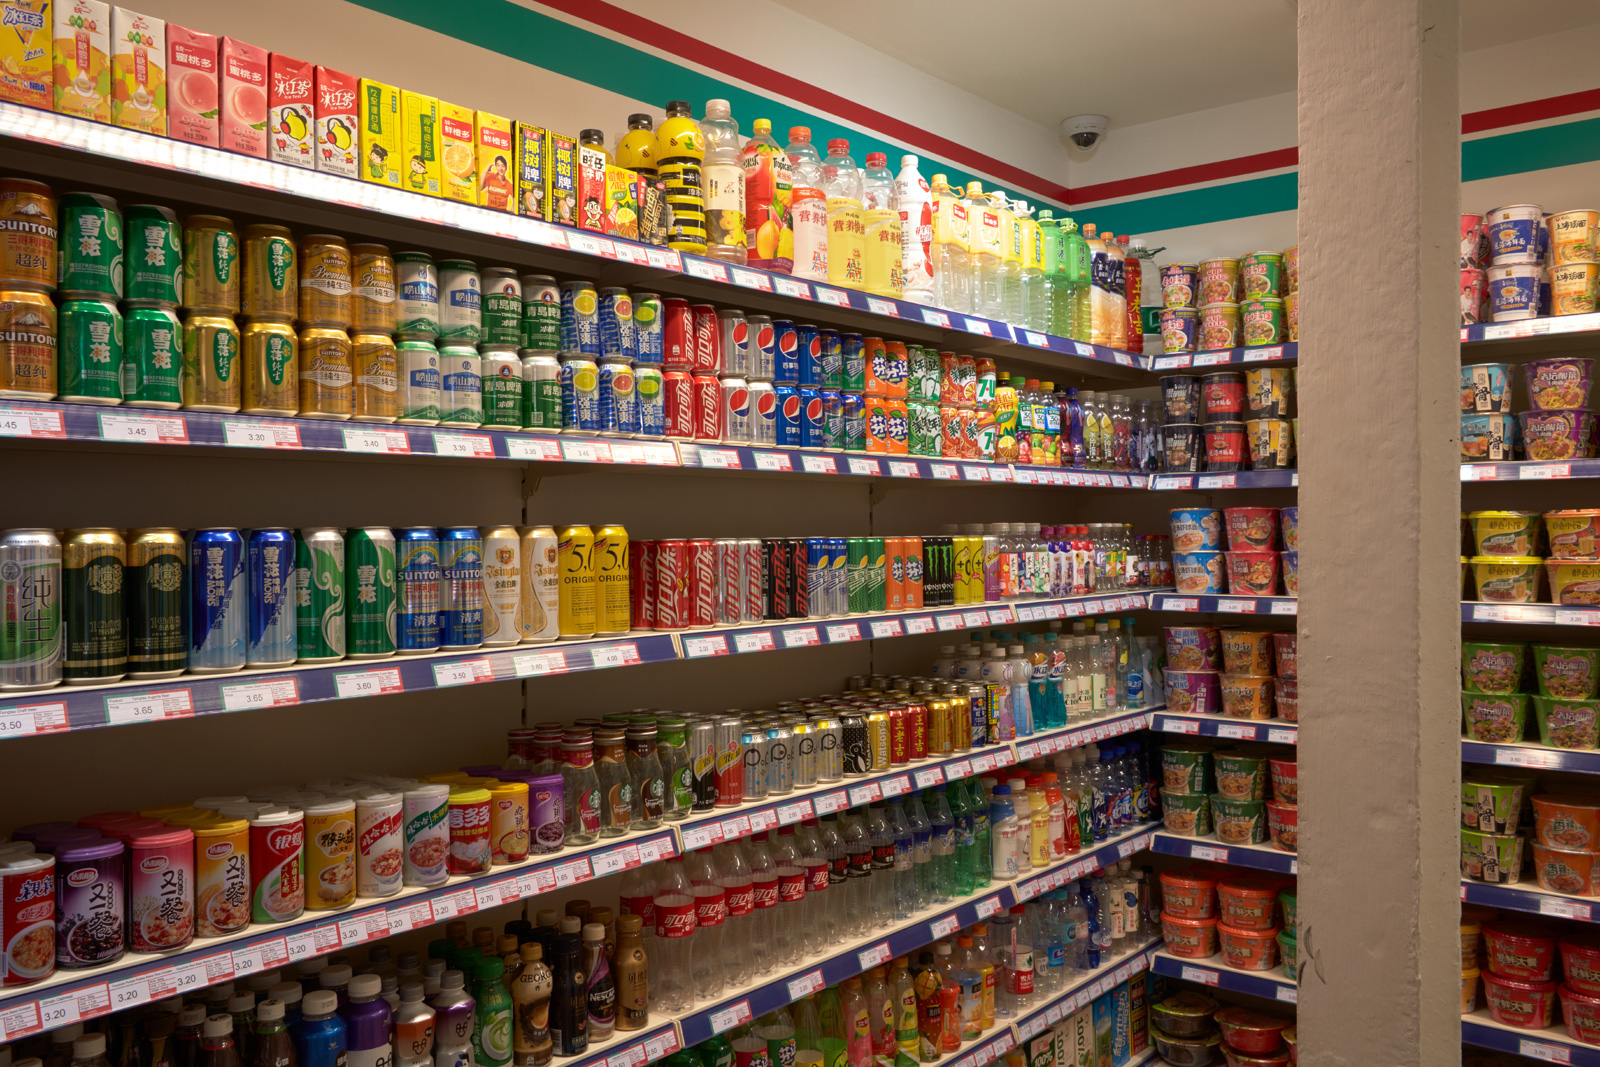 Xu Zhen, <em>XUZHEN Supermarket<em>, (2007/2017), installation view, Sadie Coles HQ, The Shop, London. (c) Copyright Xu Zhen. Courtesy Xu Zhen & MadeIn Company, Shanghai, & Sadie Coles HQ, London. Photography: Robert Glowacki